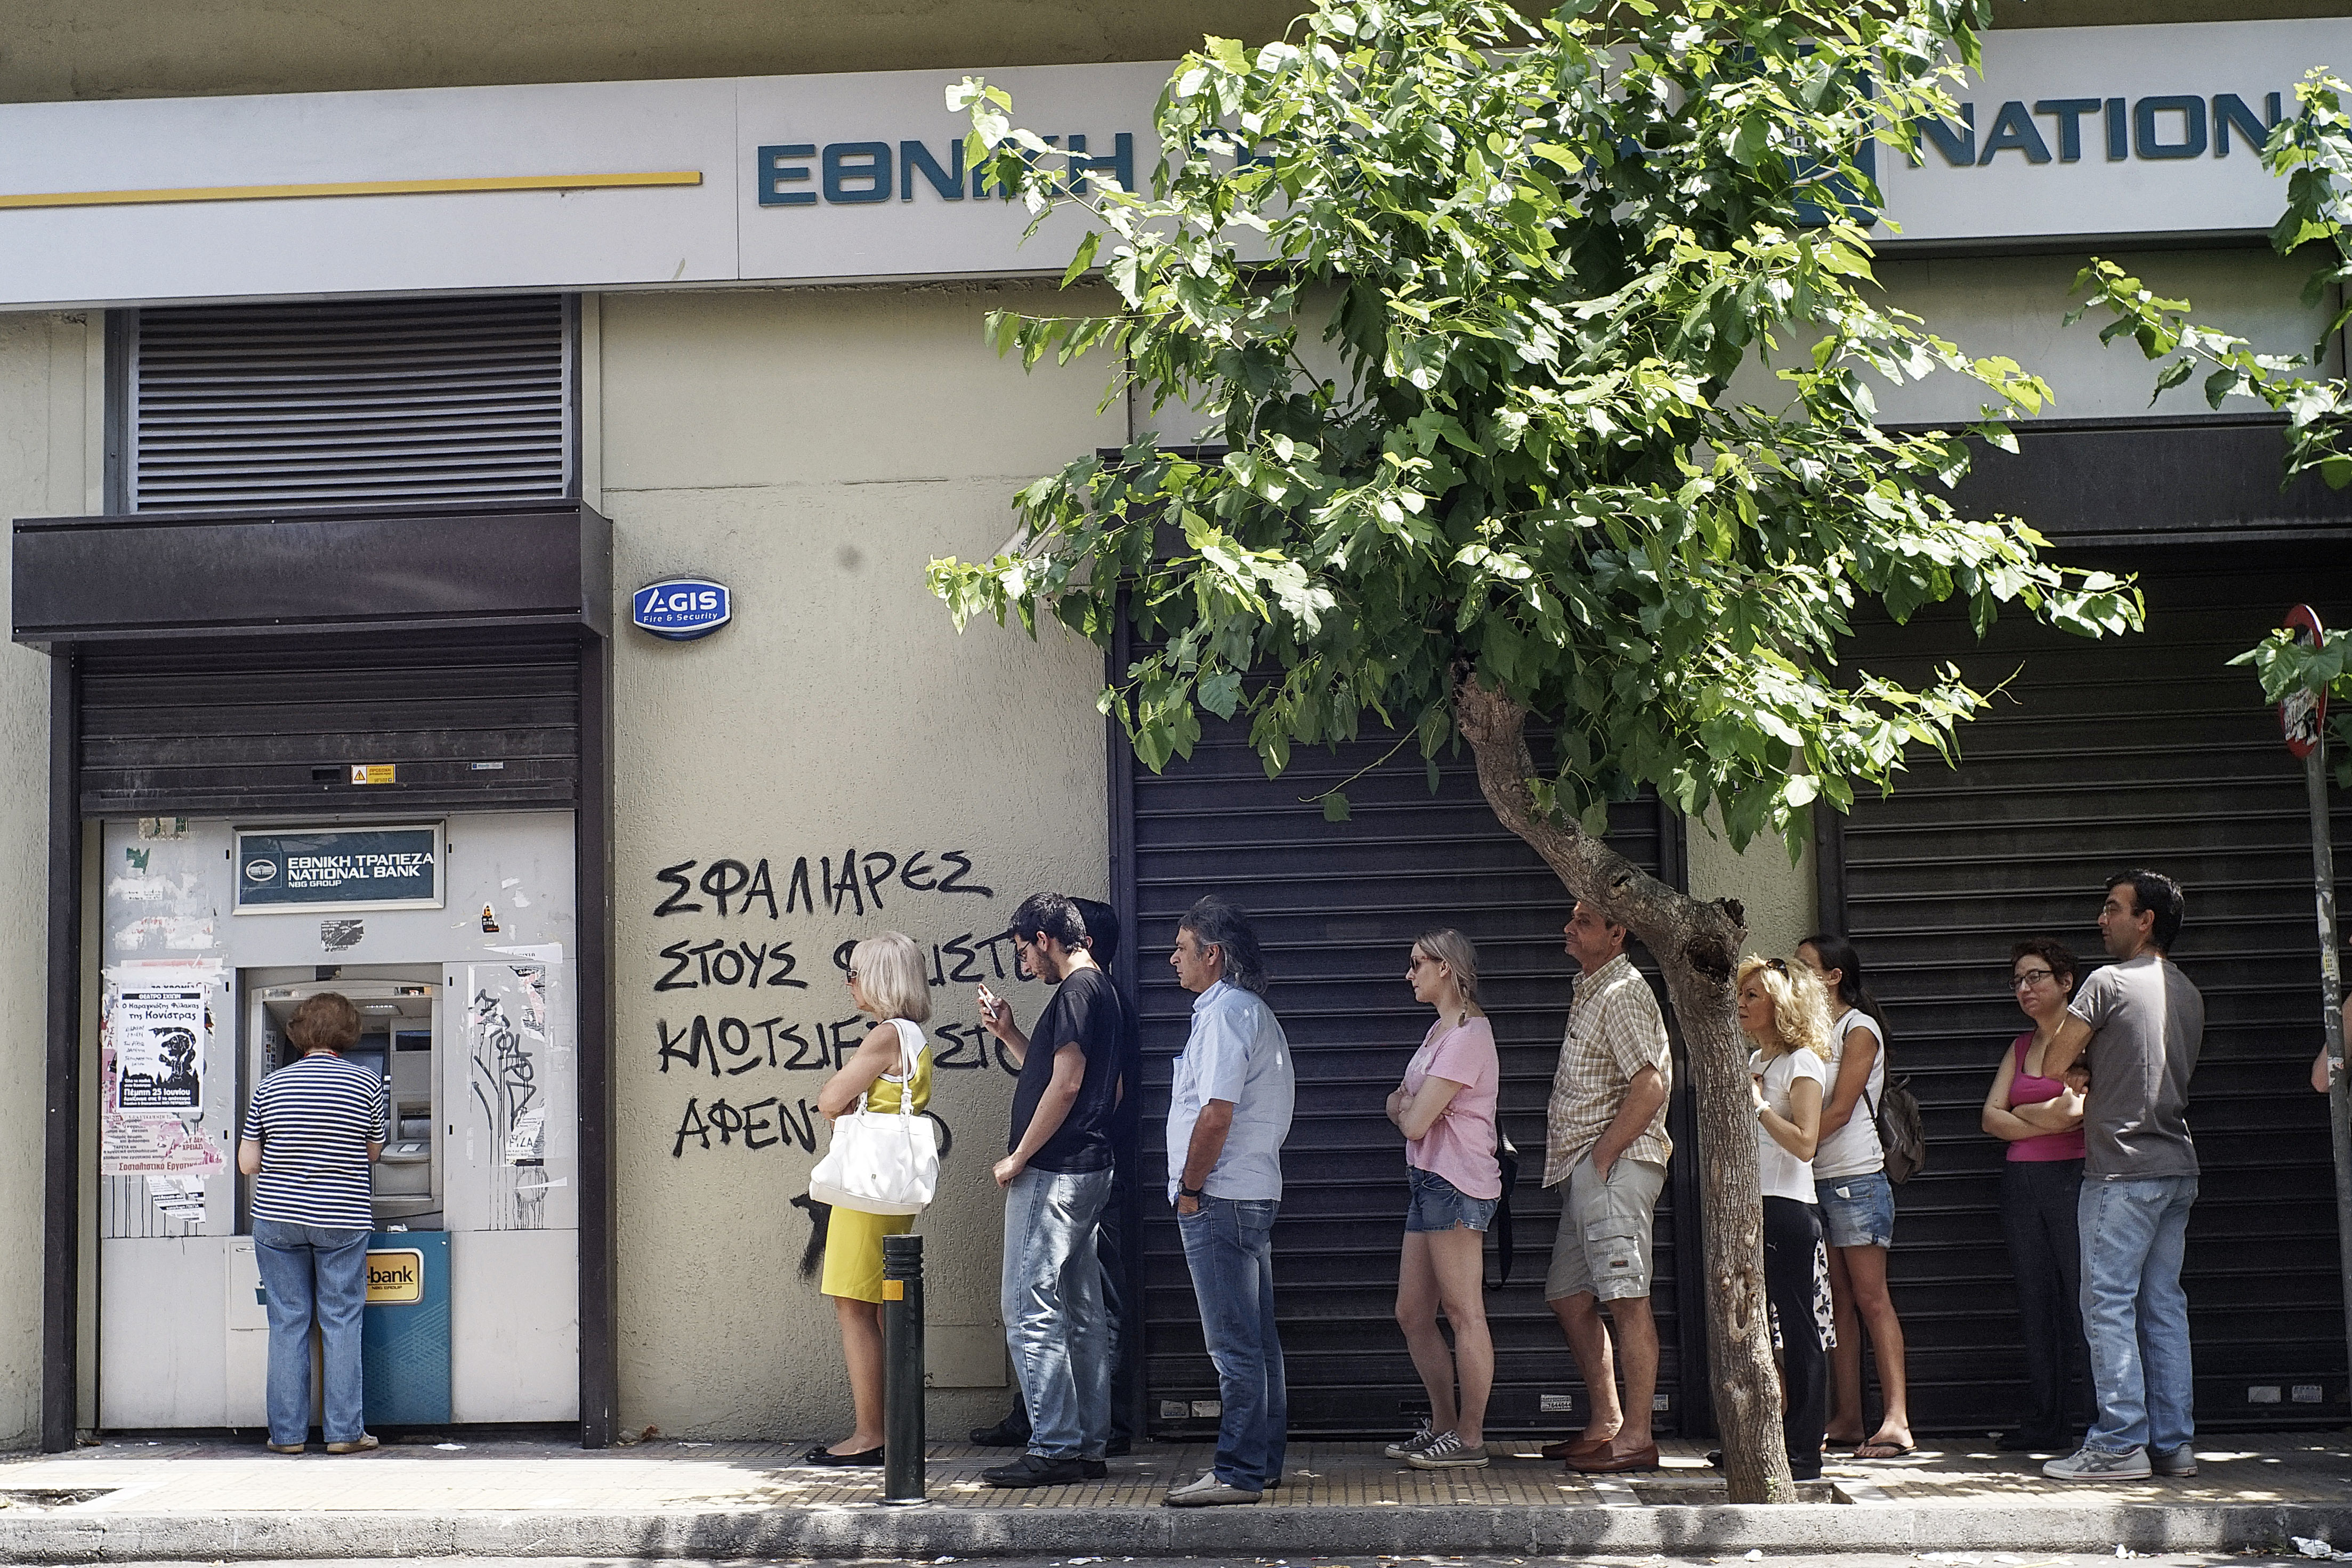 Greeks queue in front of the National Bank to use ATM to withdraw cash as Parliament holds an emergency session for the government's proposed referendum June 27, 2015 in Athens, Greece.